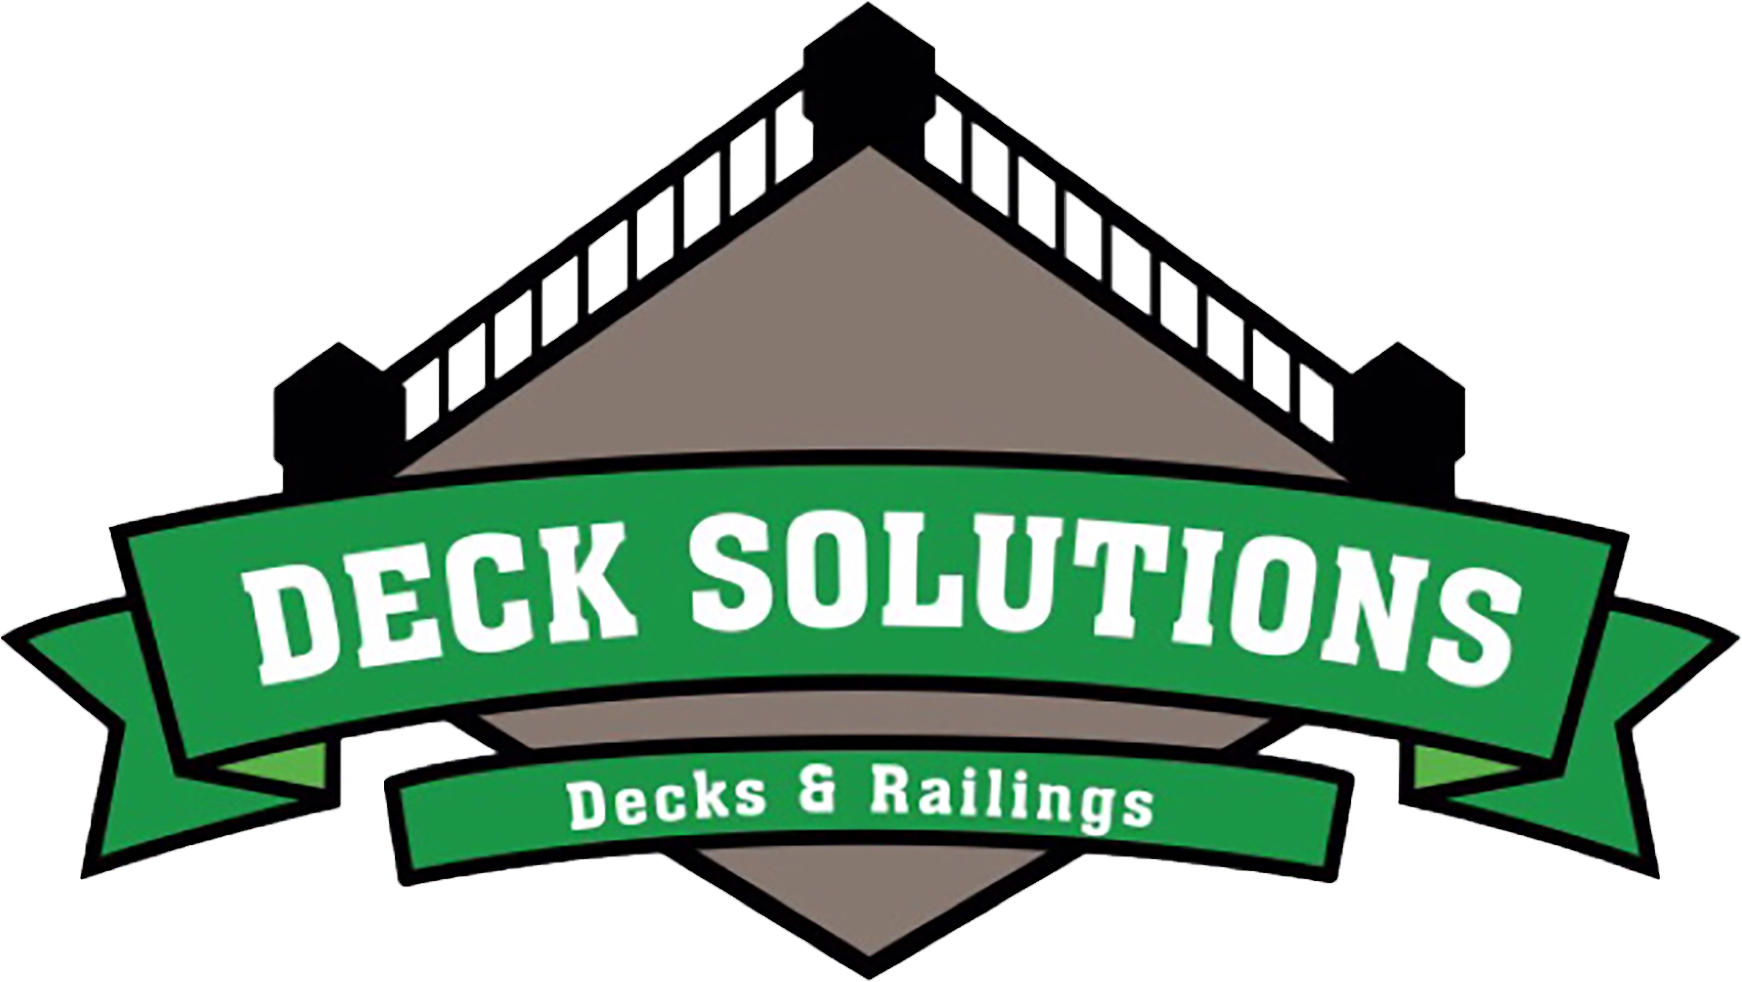 Deck Solutions